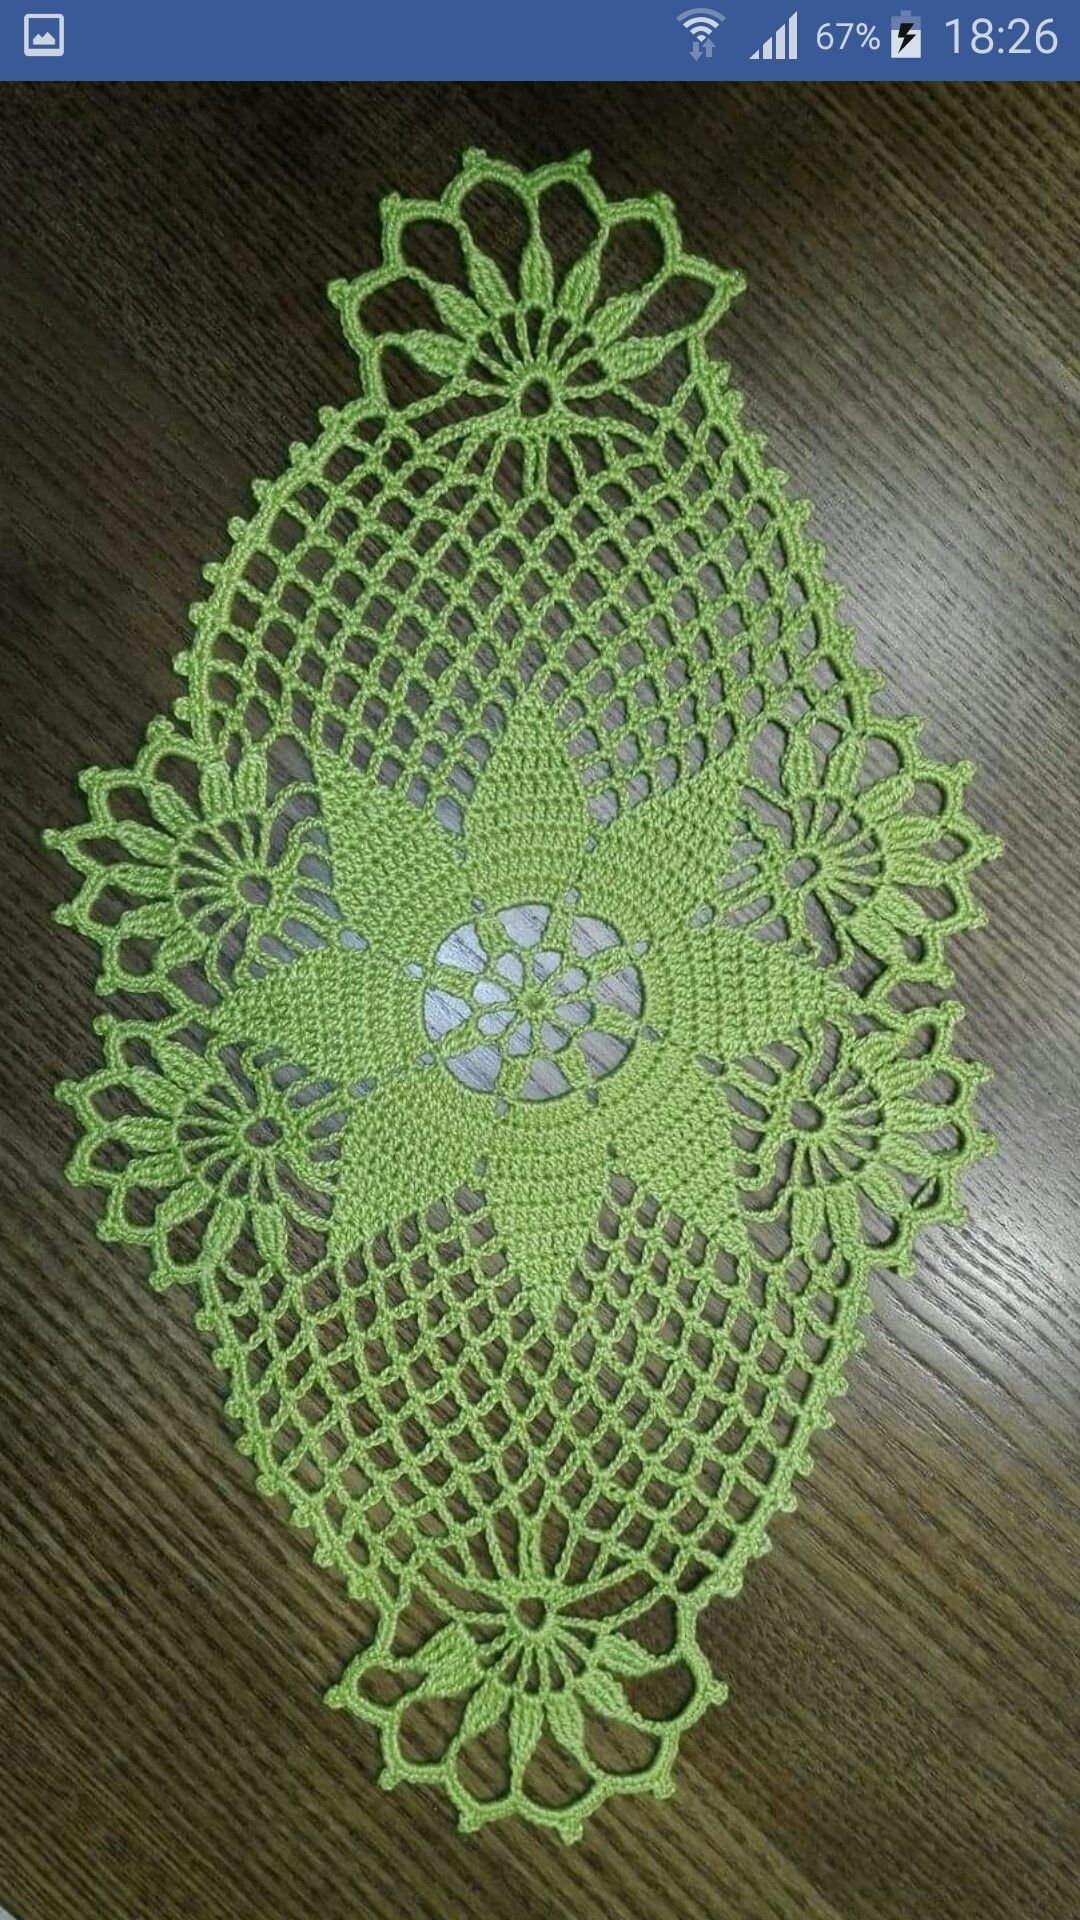 Maria 46 | CROCHET..ISIMO | Pinterest | Crochet, Crochet doilies and ...